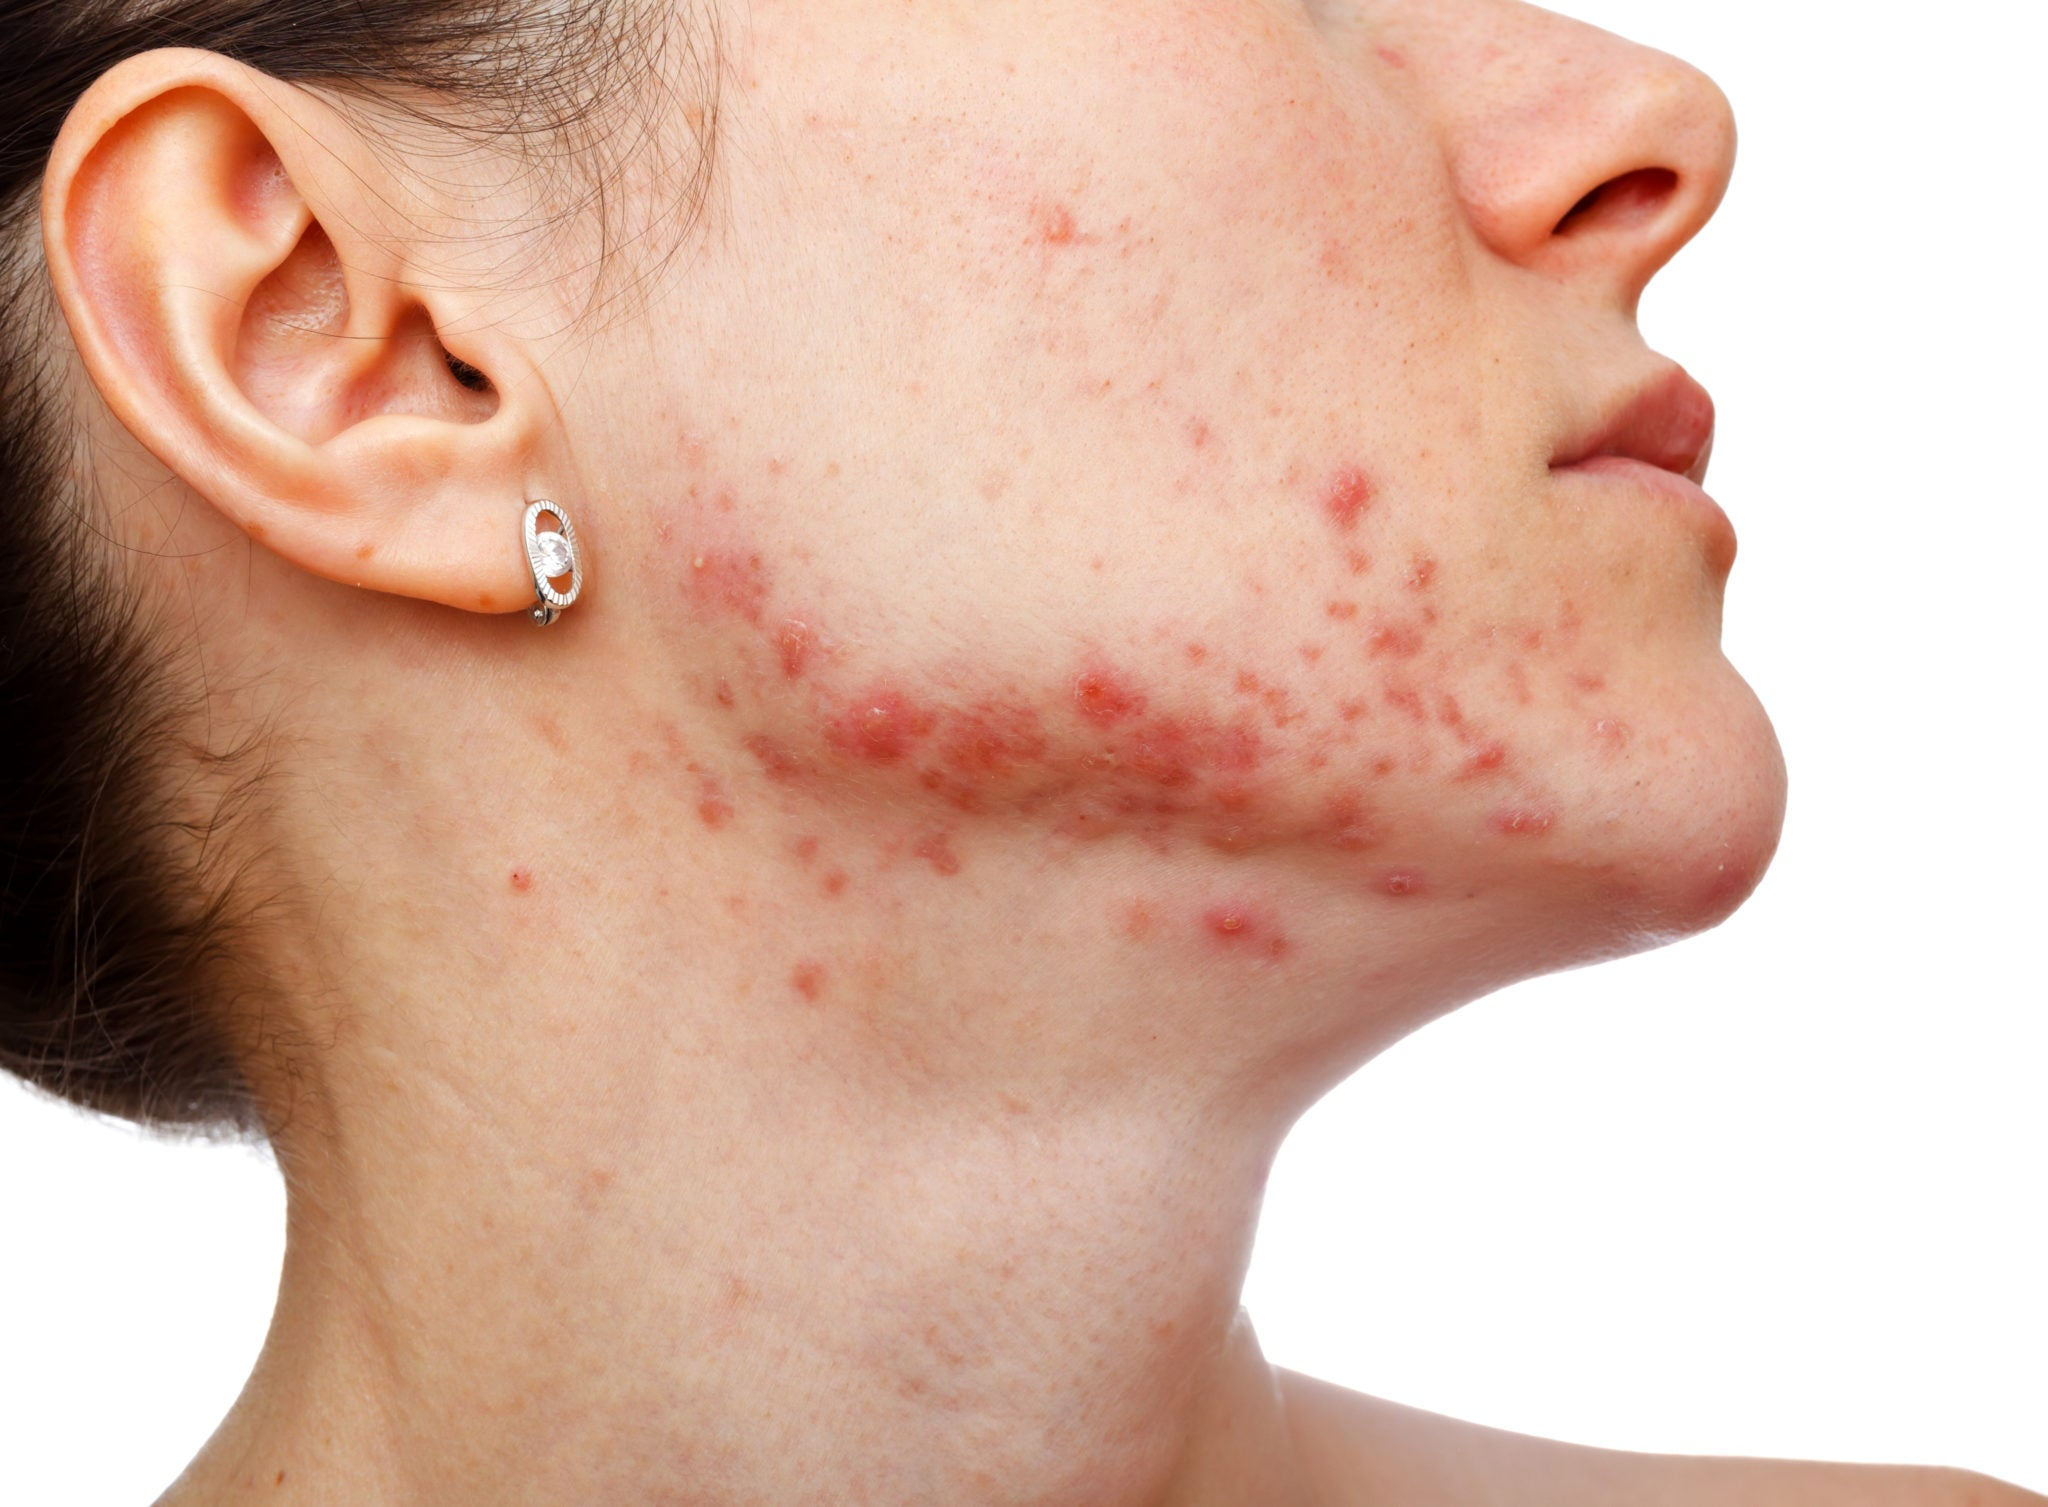 Does PCOS cause acne?